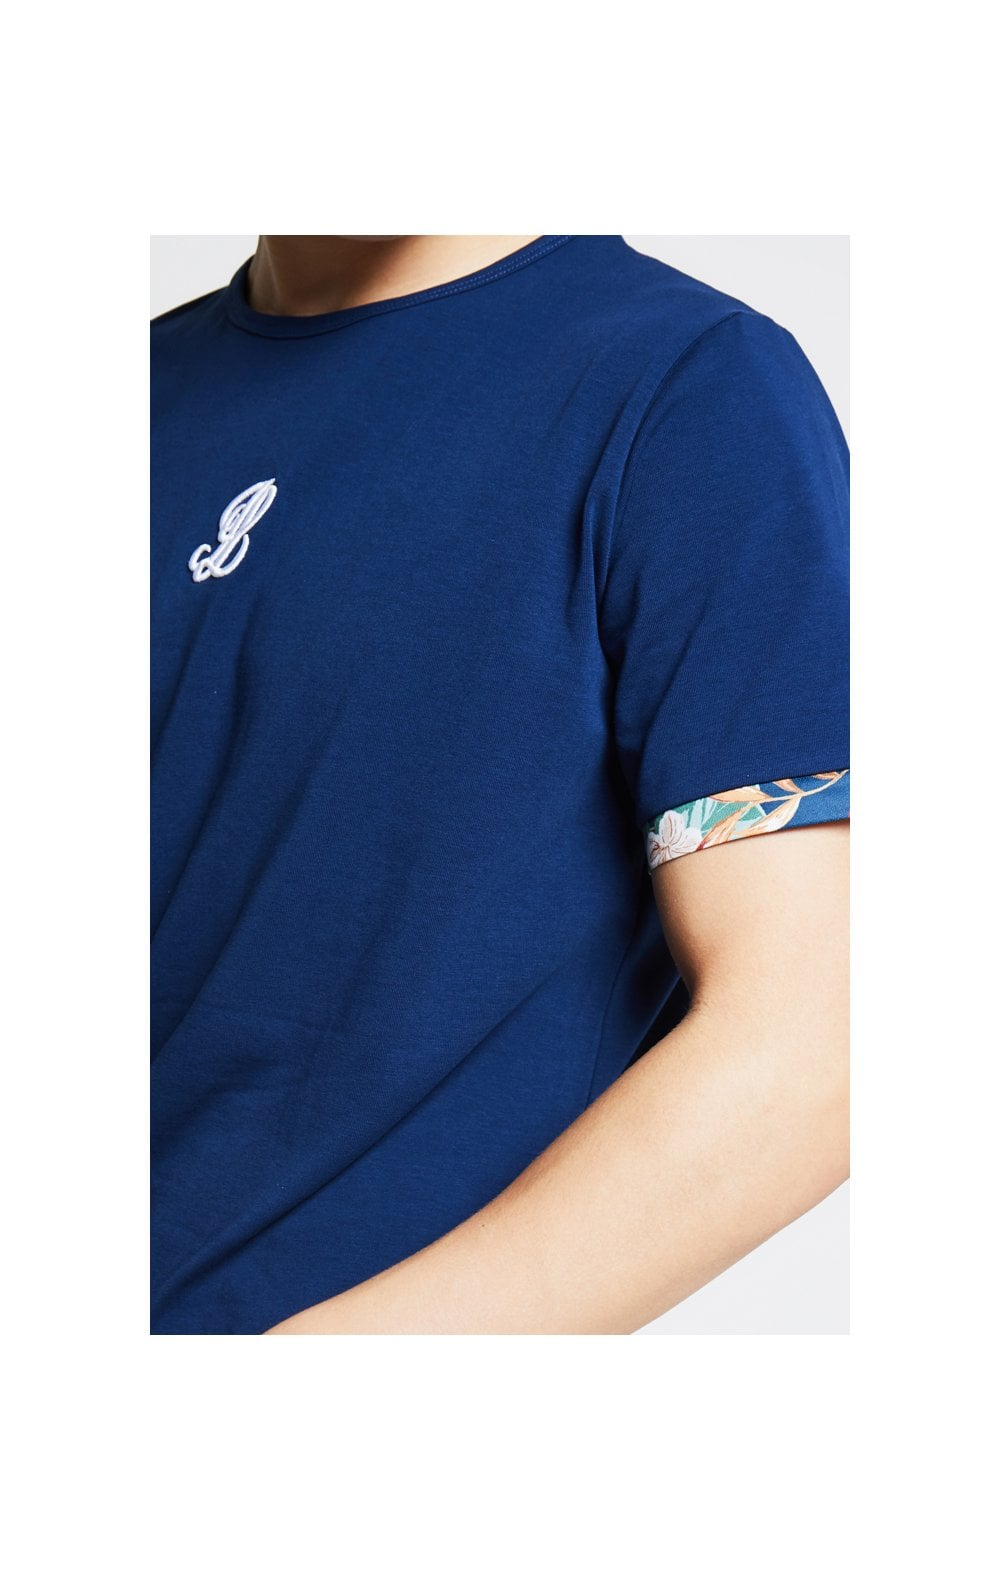 Illusive London Contrast Cuff Tee – Teal & Tropical Leaf (1)